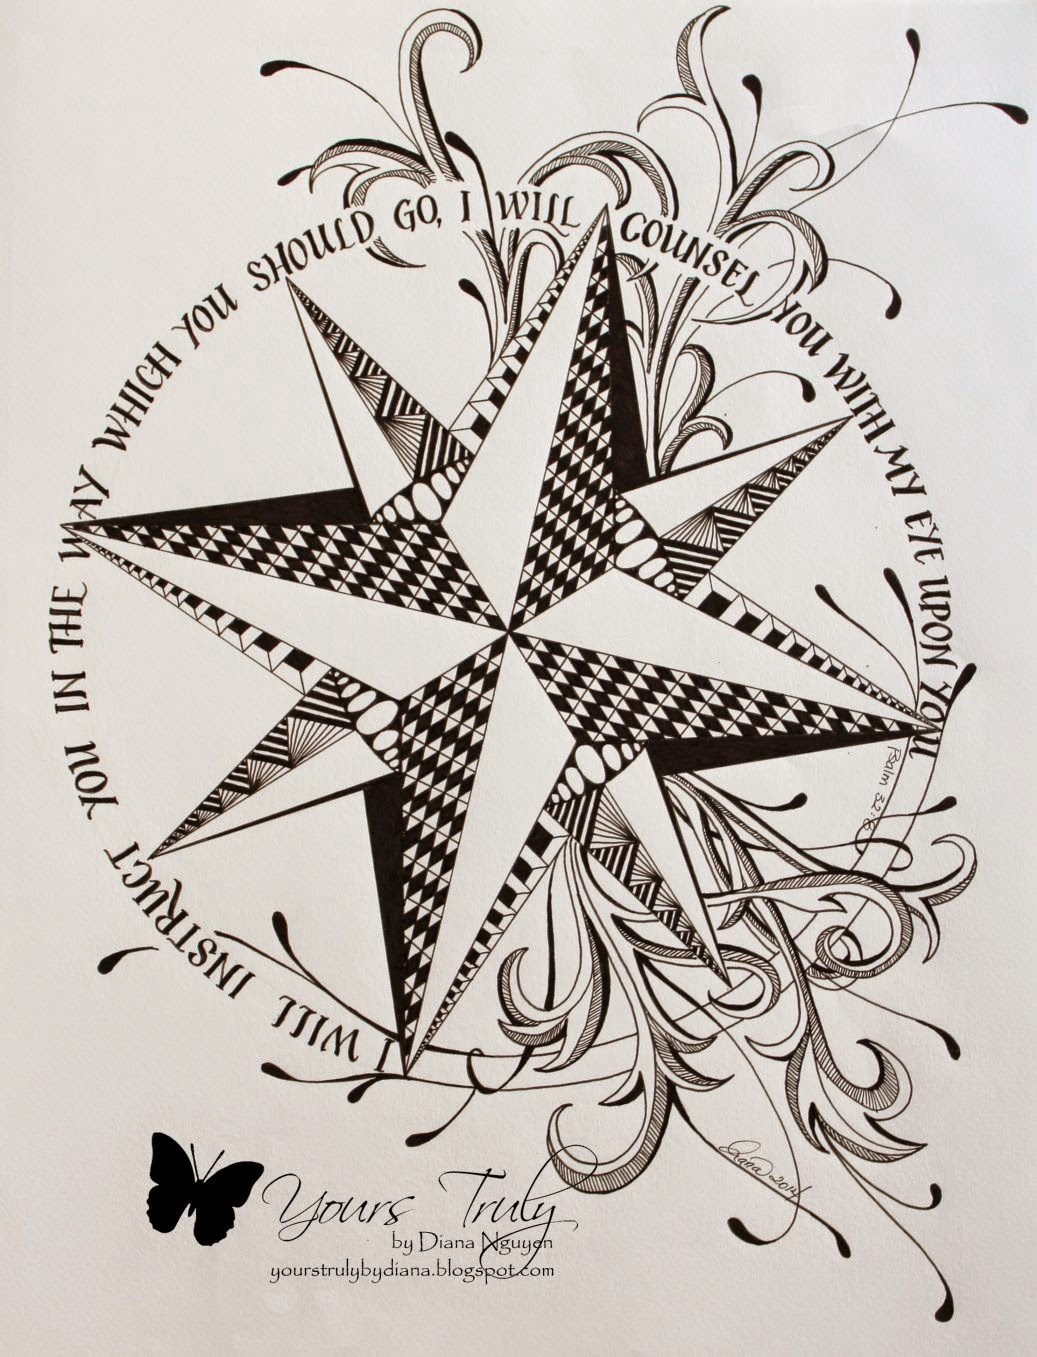 Diana Nguyen, zentangle, scripture, compass